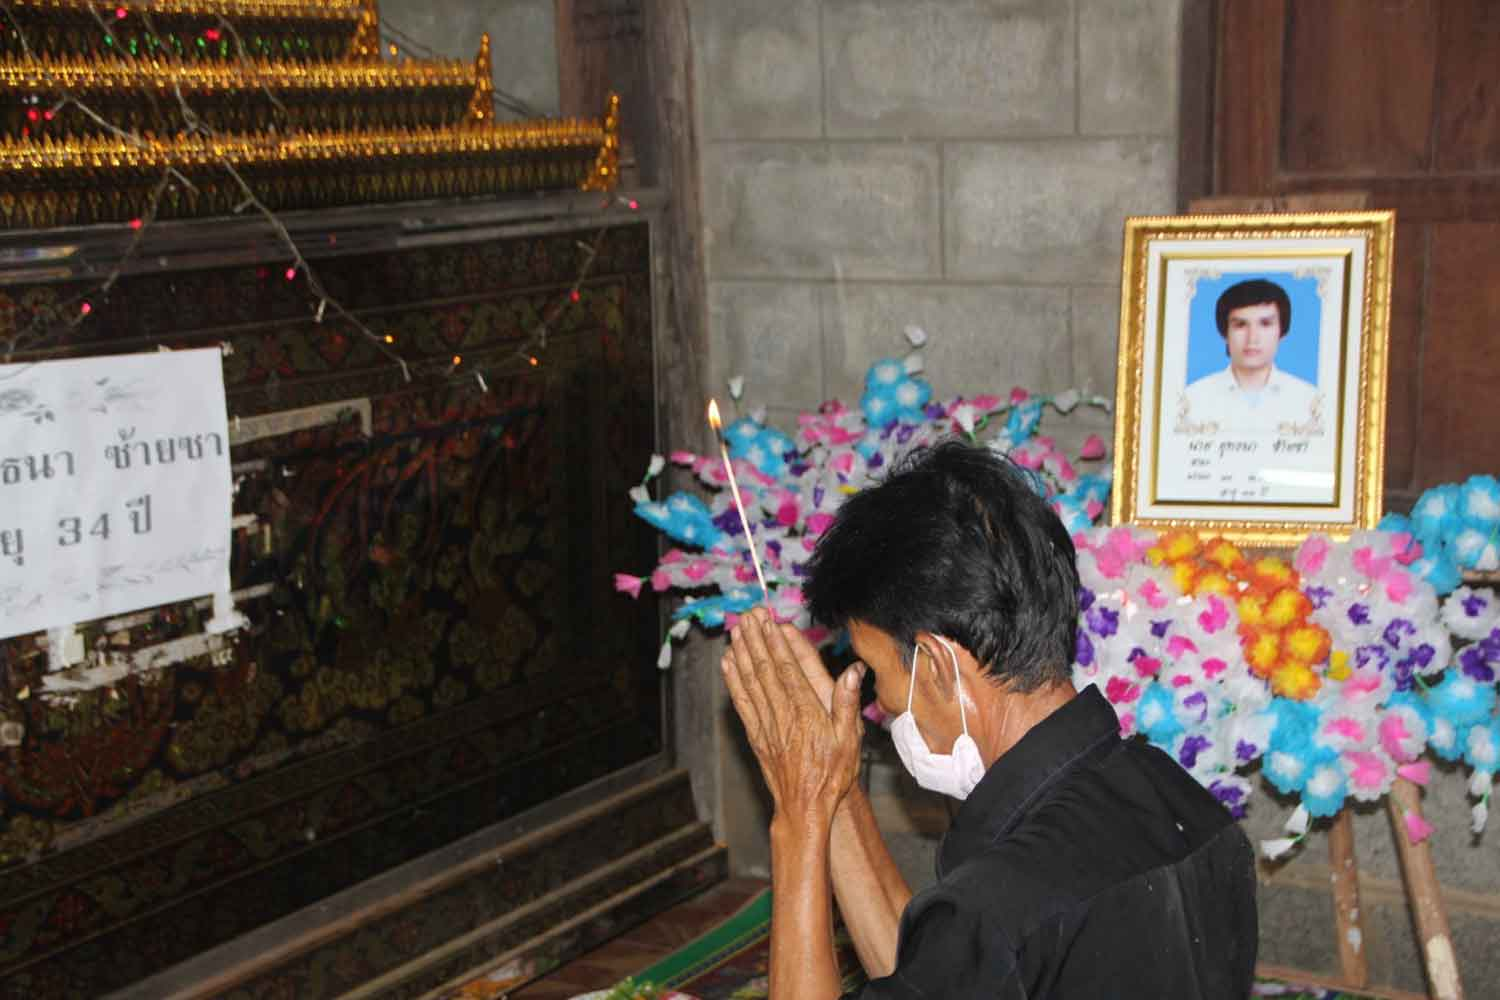 Niwat Saisa pays tribute to his son Yutthana, who died with severe injuries while in military custody in Nakhon Phanom province.(Photo: Pattanapong Sripiachai)